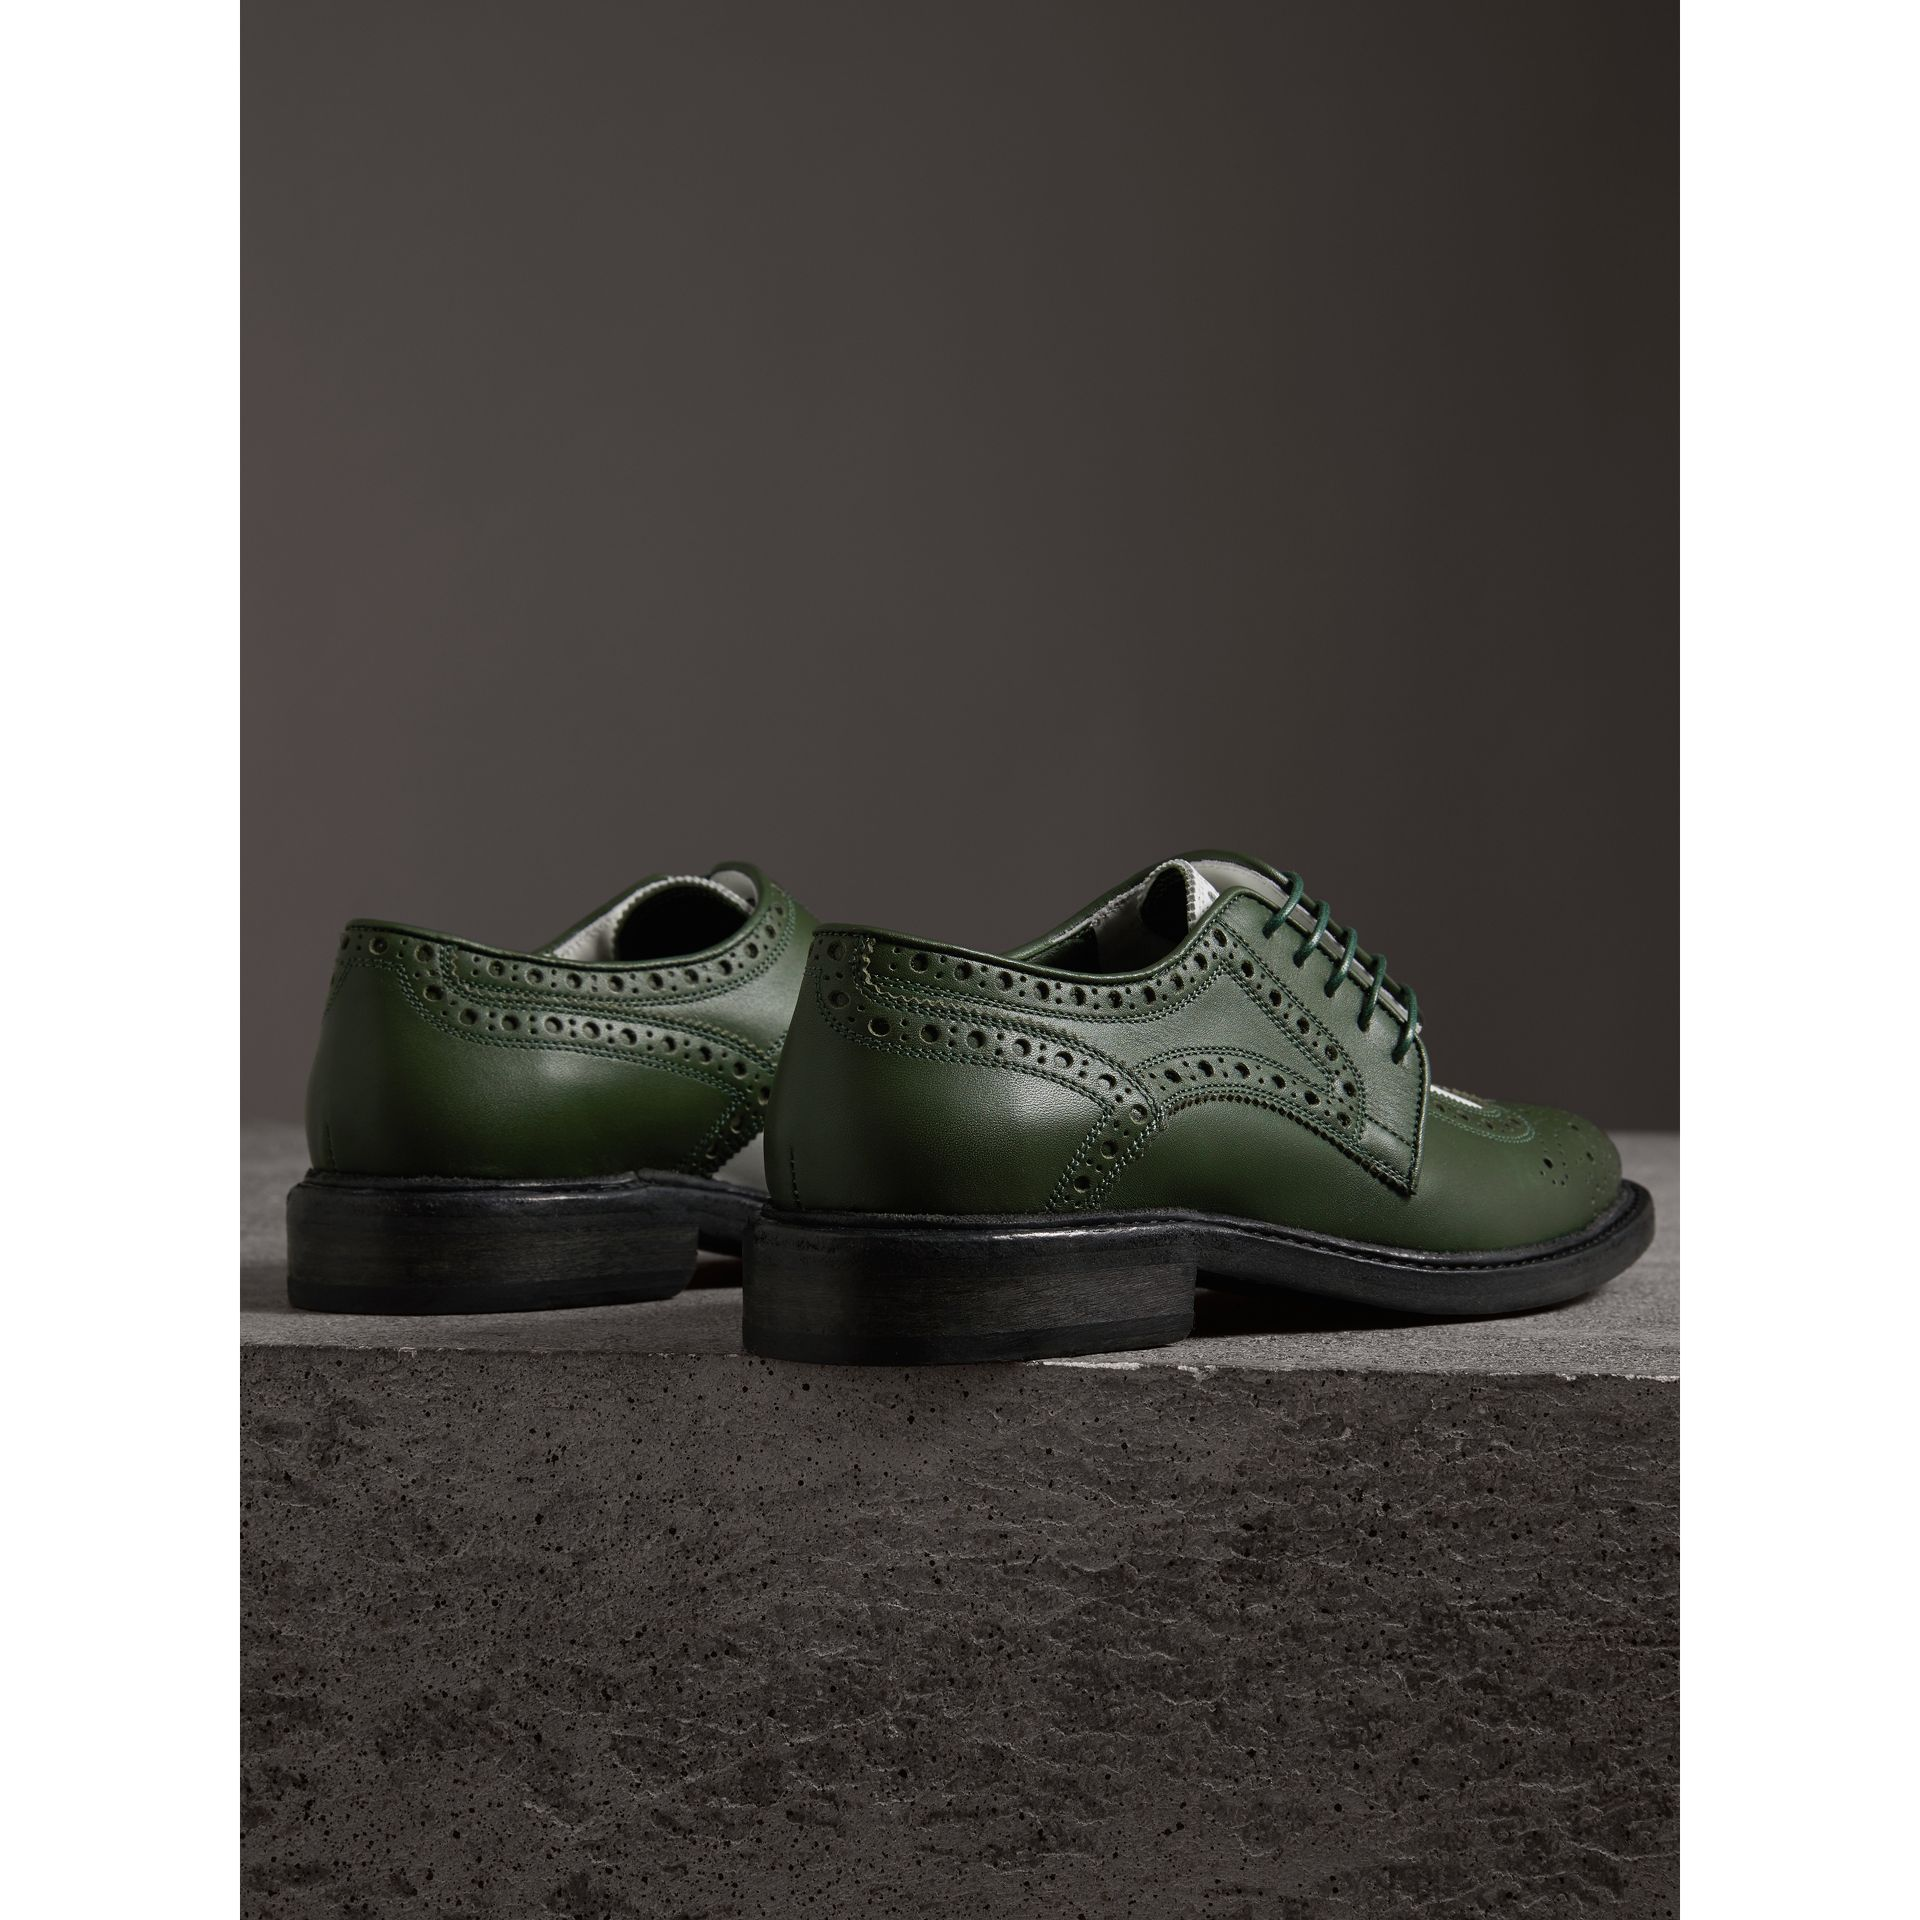 Two-tone Asymmetric Closure Leather Brogues in Dark Green - Women | Burberry - gallery image 3